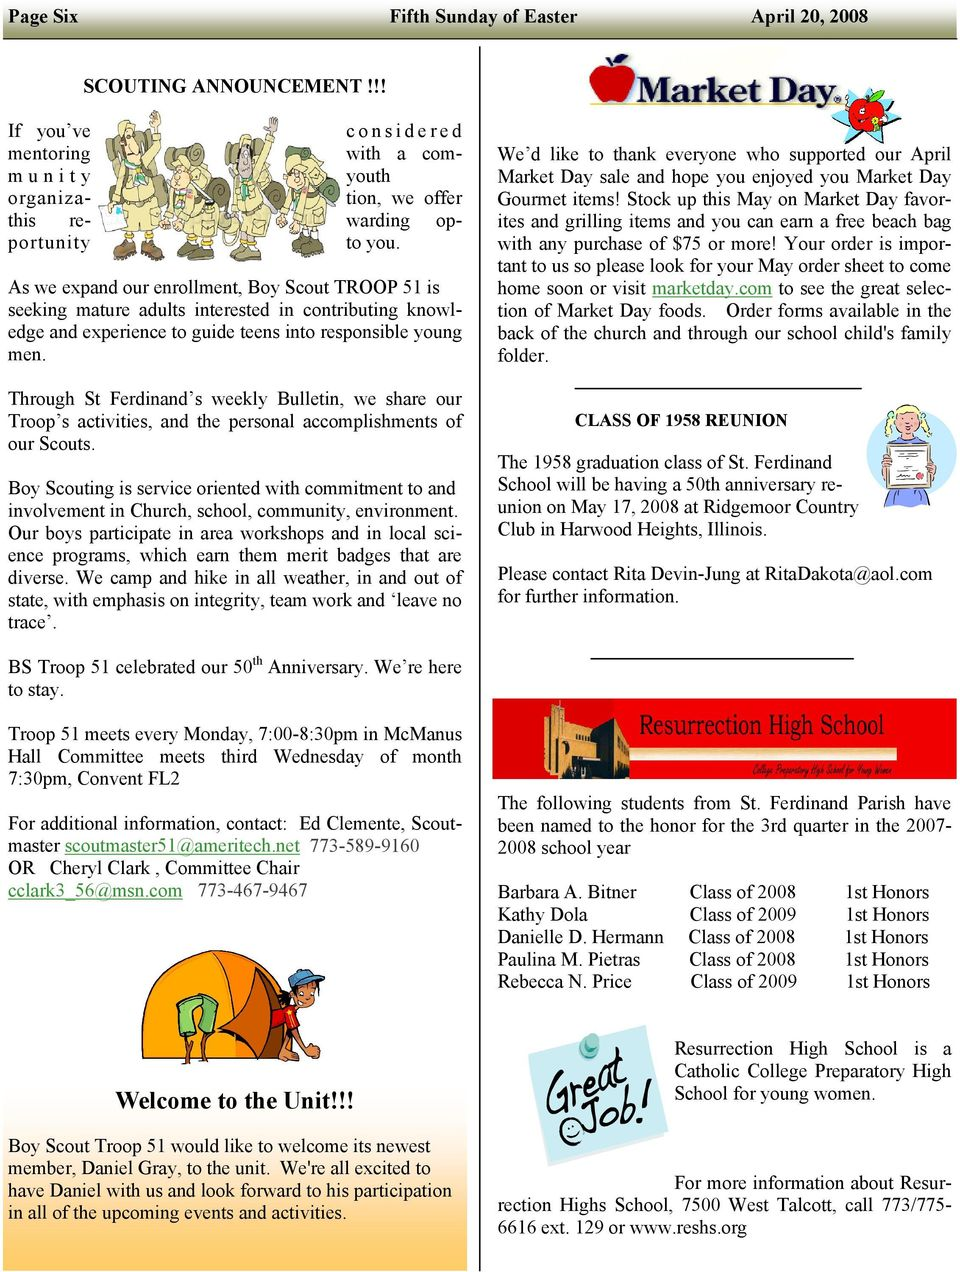 Through St Ferdinand s weekly Bulletin, we share our Troop s activities, and the personal accomplishments of our Scouts.